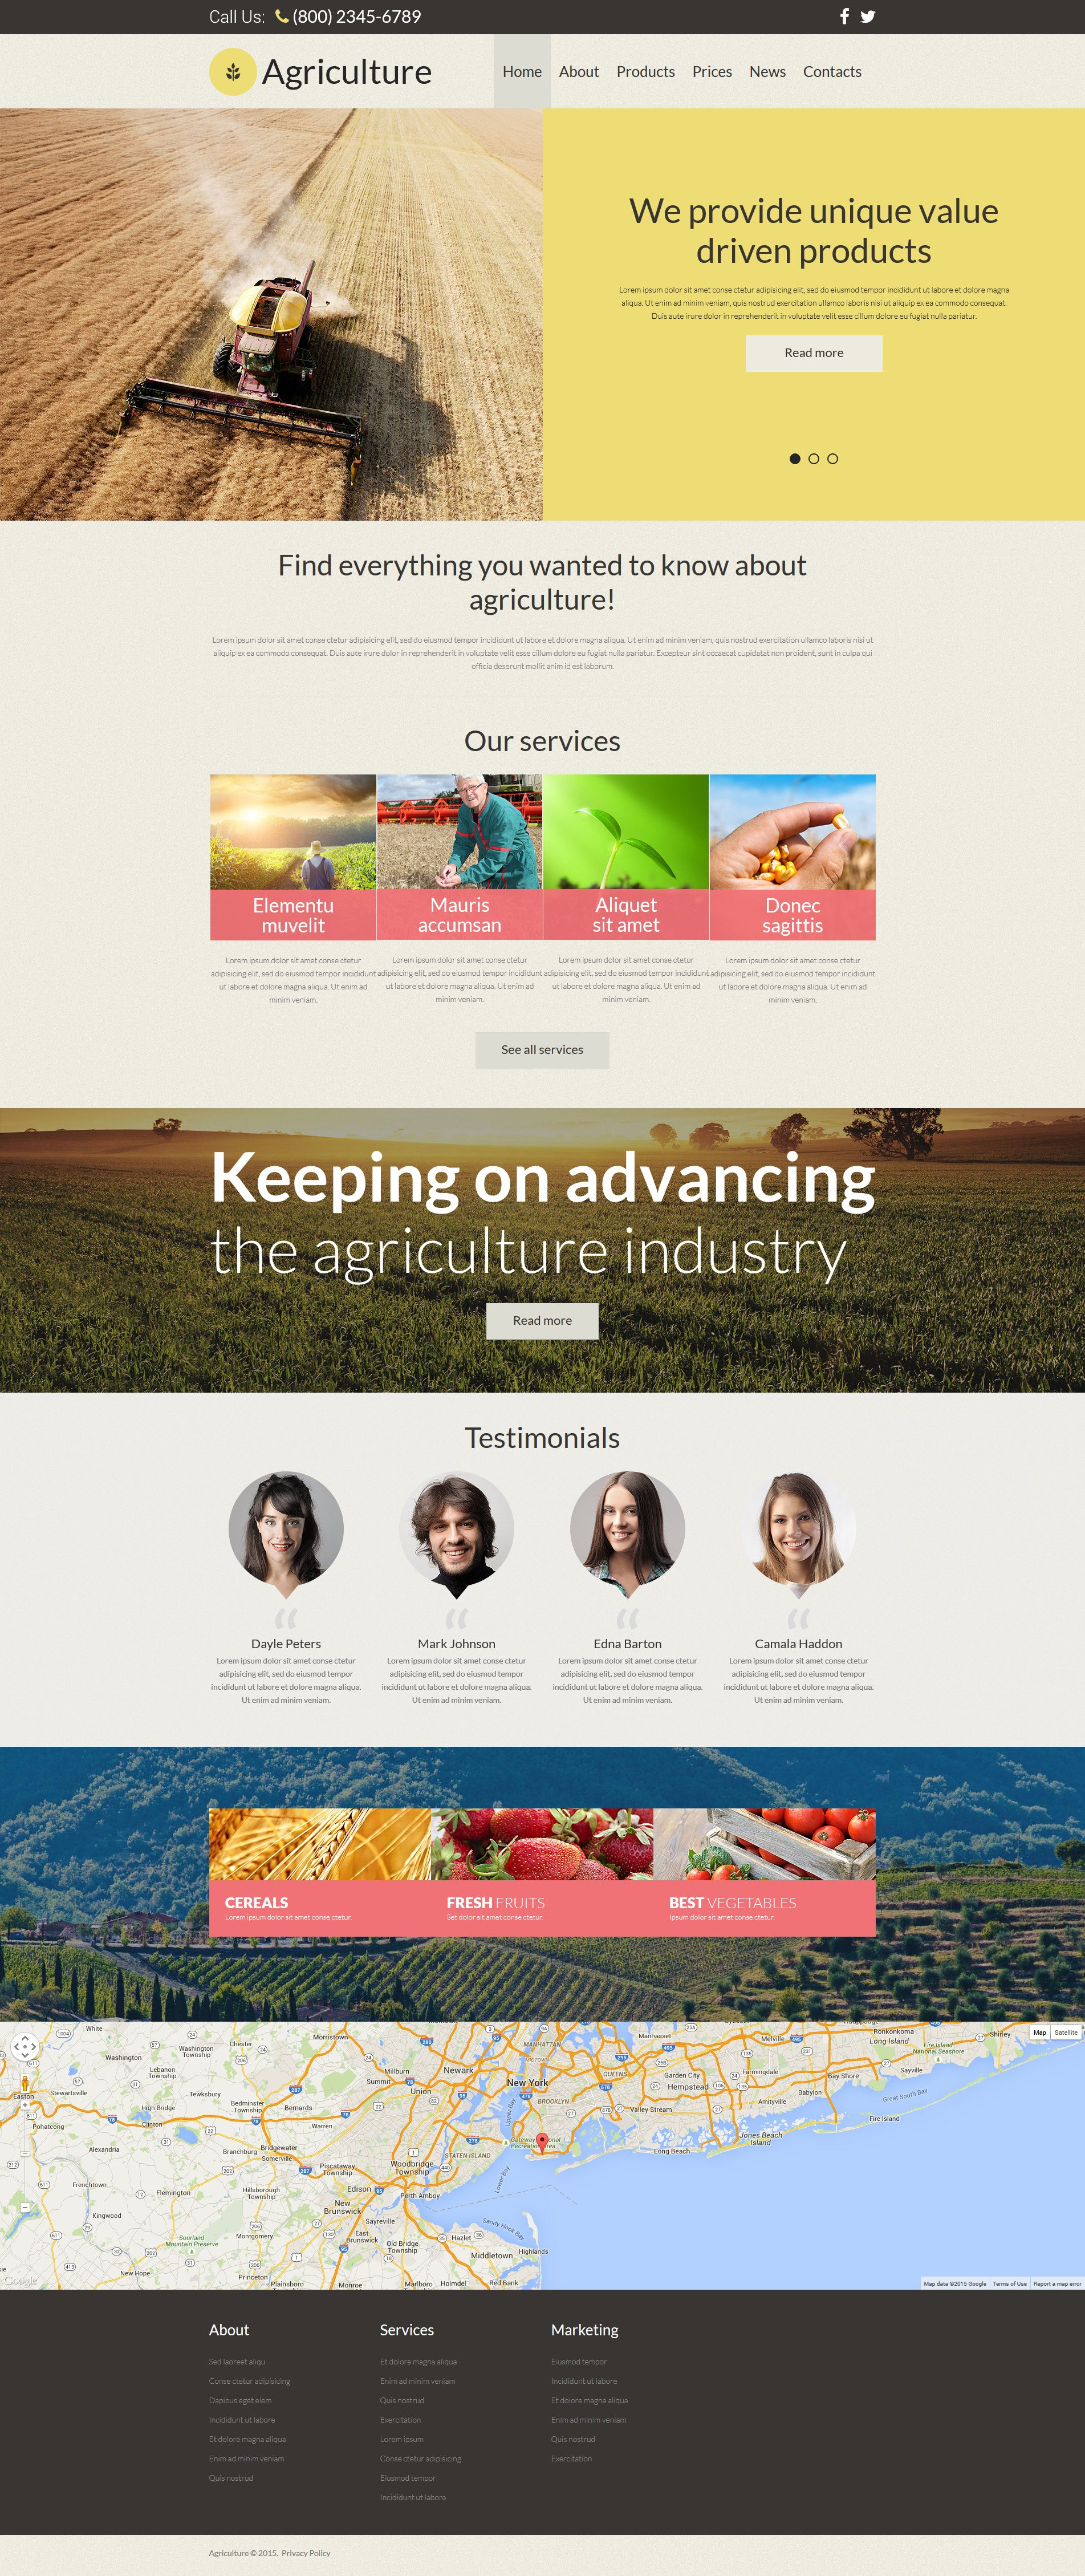 The Agriculture Company Joomla Design 54587, one of the best Joomla templates of its kind (agriculture, most popular), also known as agriculture company Joomla template, business Joomla template, grain-crops Joomla template, cereals Joomla template, field Joomla template, combine Joomla template, harvest Joomla template, farming Joomla template, plants Joomla template, services Joomla template, products solutions Joomla template, market Joomla template, delivery Joomla template, resource Joomla template, grassland Joomla template, equipment Joomla template, nitrates Joomla template, fertilizer Joomla template, clients Joomla template, partners Joomla template, innovations Joomla template, support Joomla template, information dealer Joomla template, stocks and related with agriculture company, business, grain-crops, cereals, field, combine, harvest, farming, plants, services, products solutions, market, delivery, resource, grassland, equipment, nitrates, fertilizer, clients, partners, innovations, support, information dealer, stocks, etc.